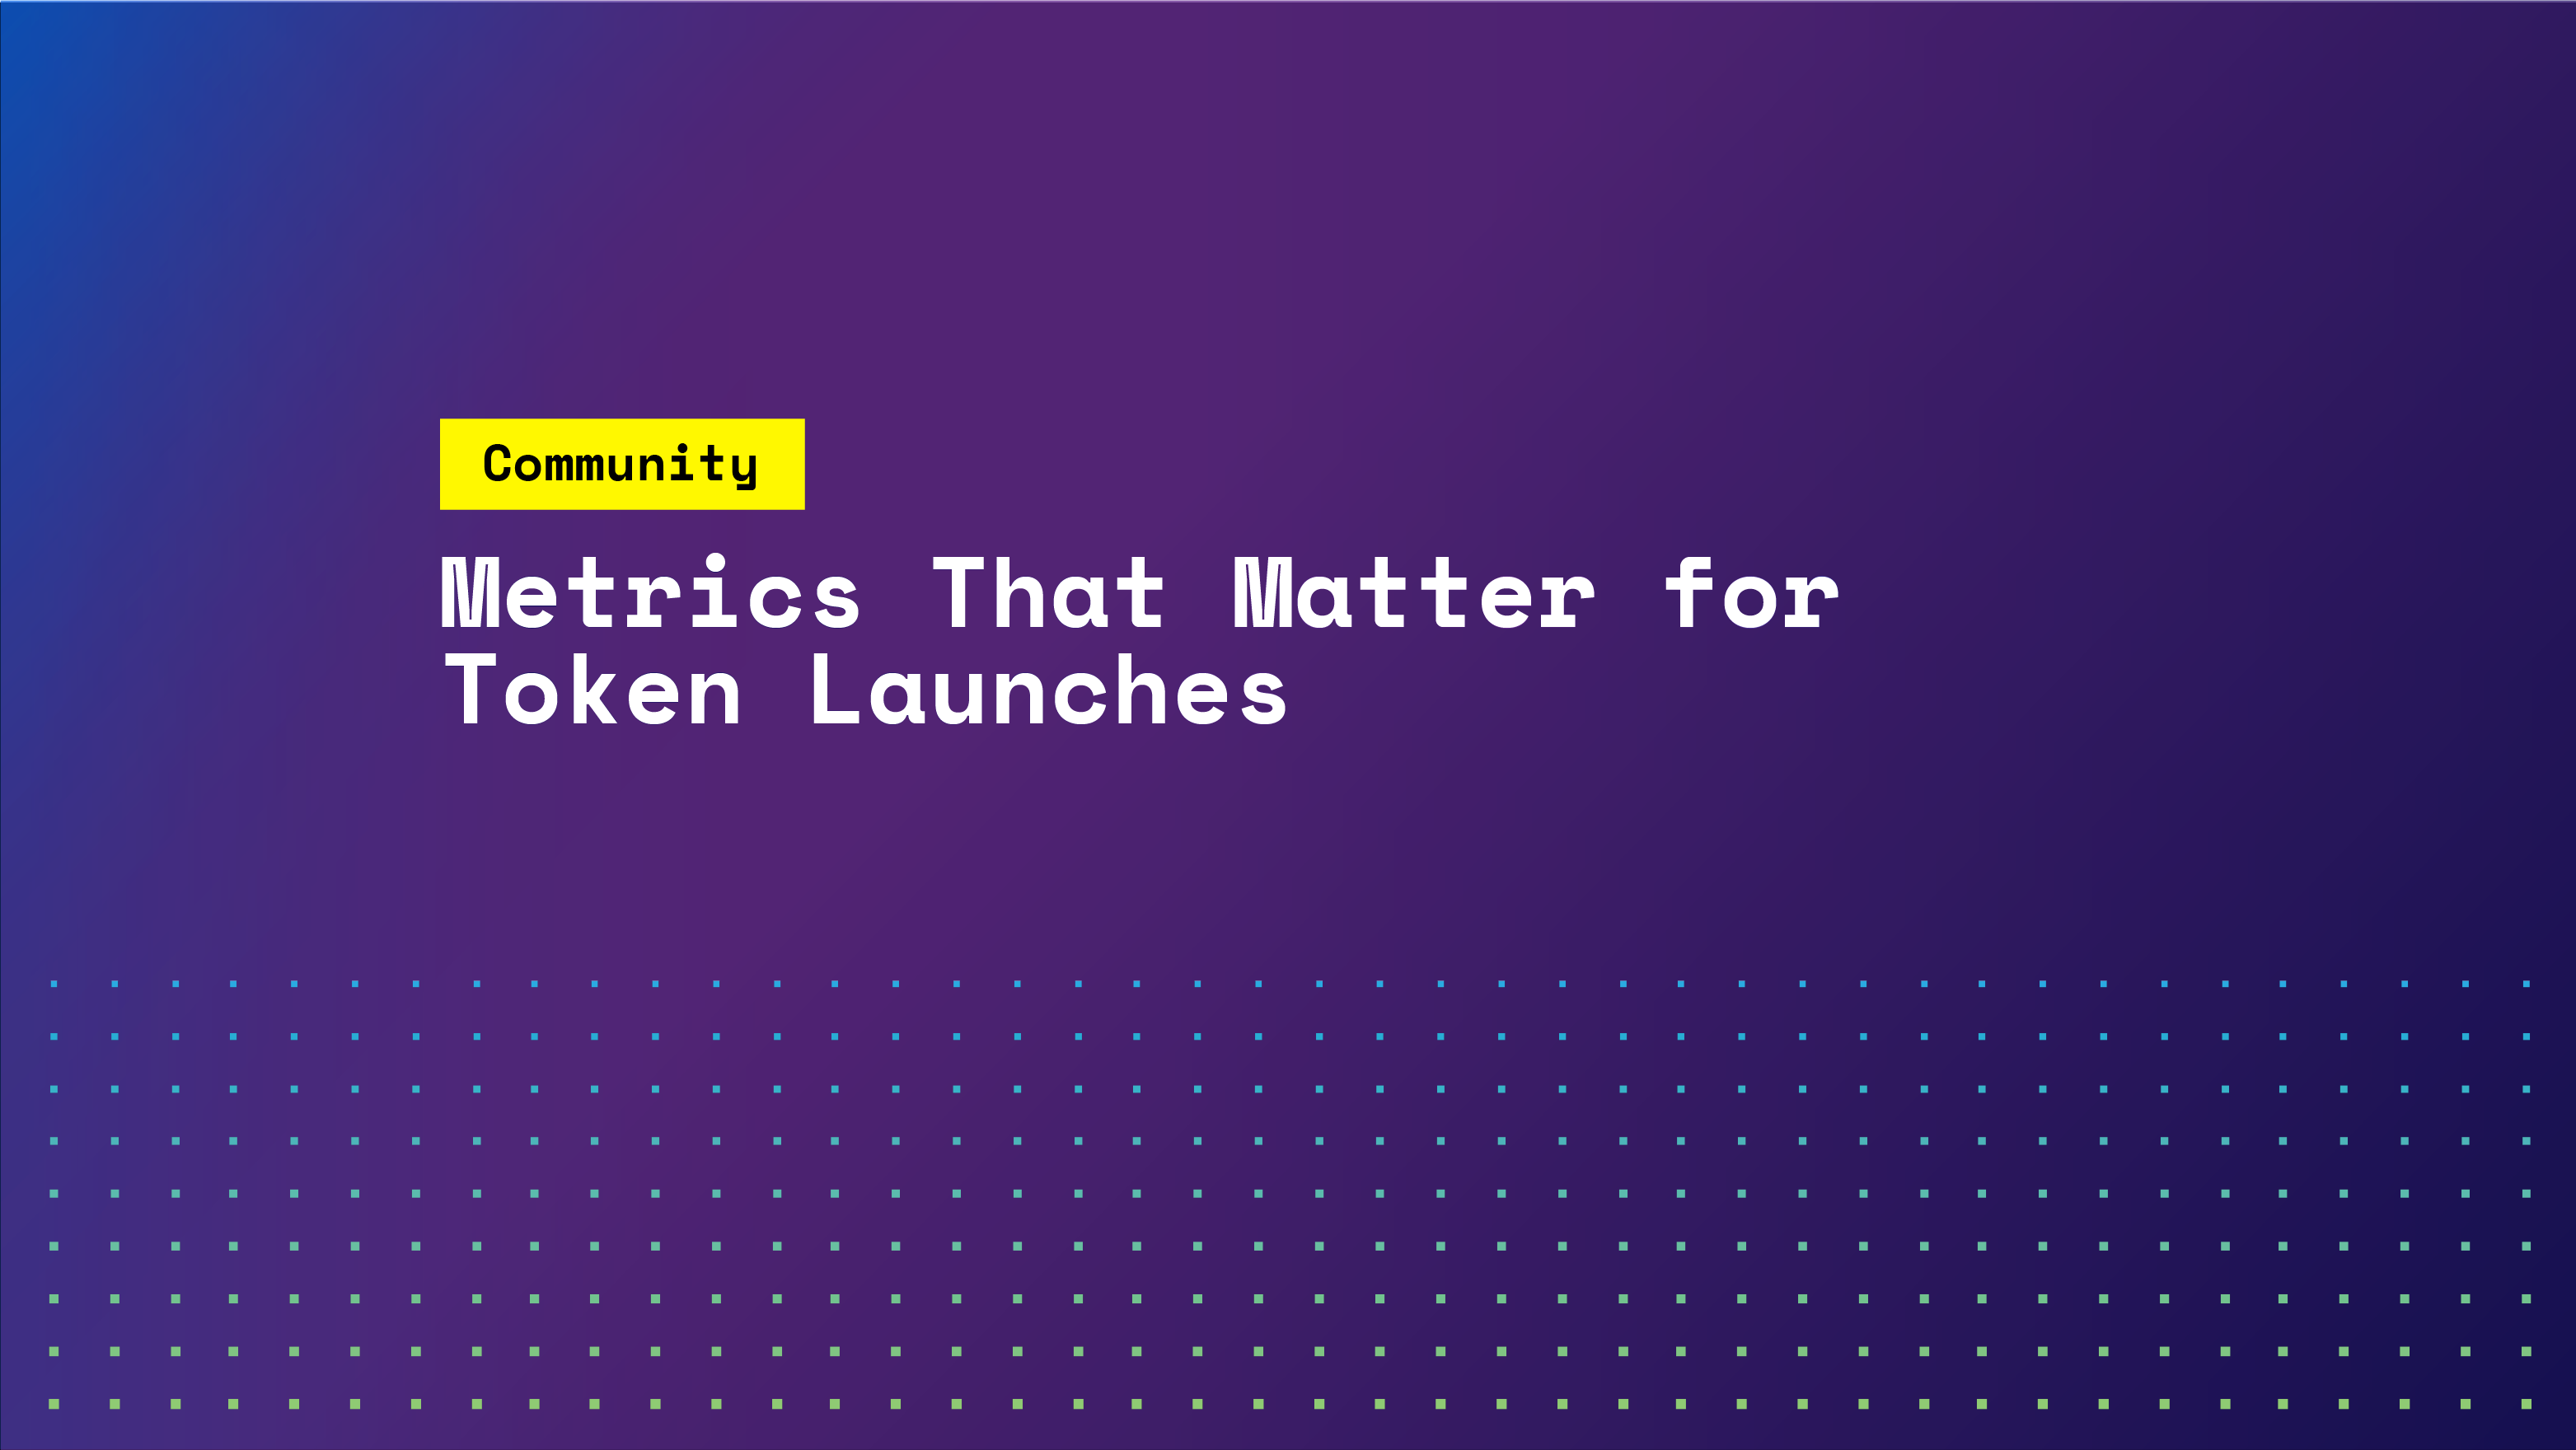 Metrics That Matter for Token Launches